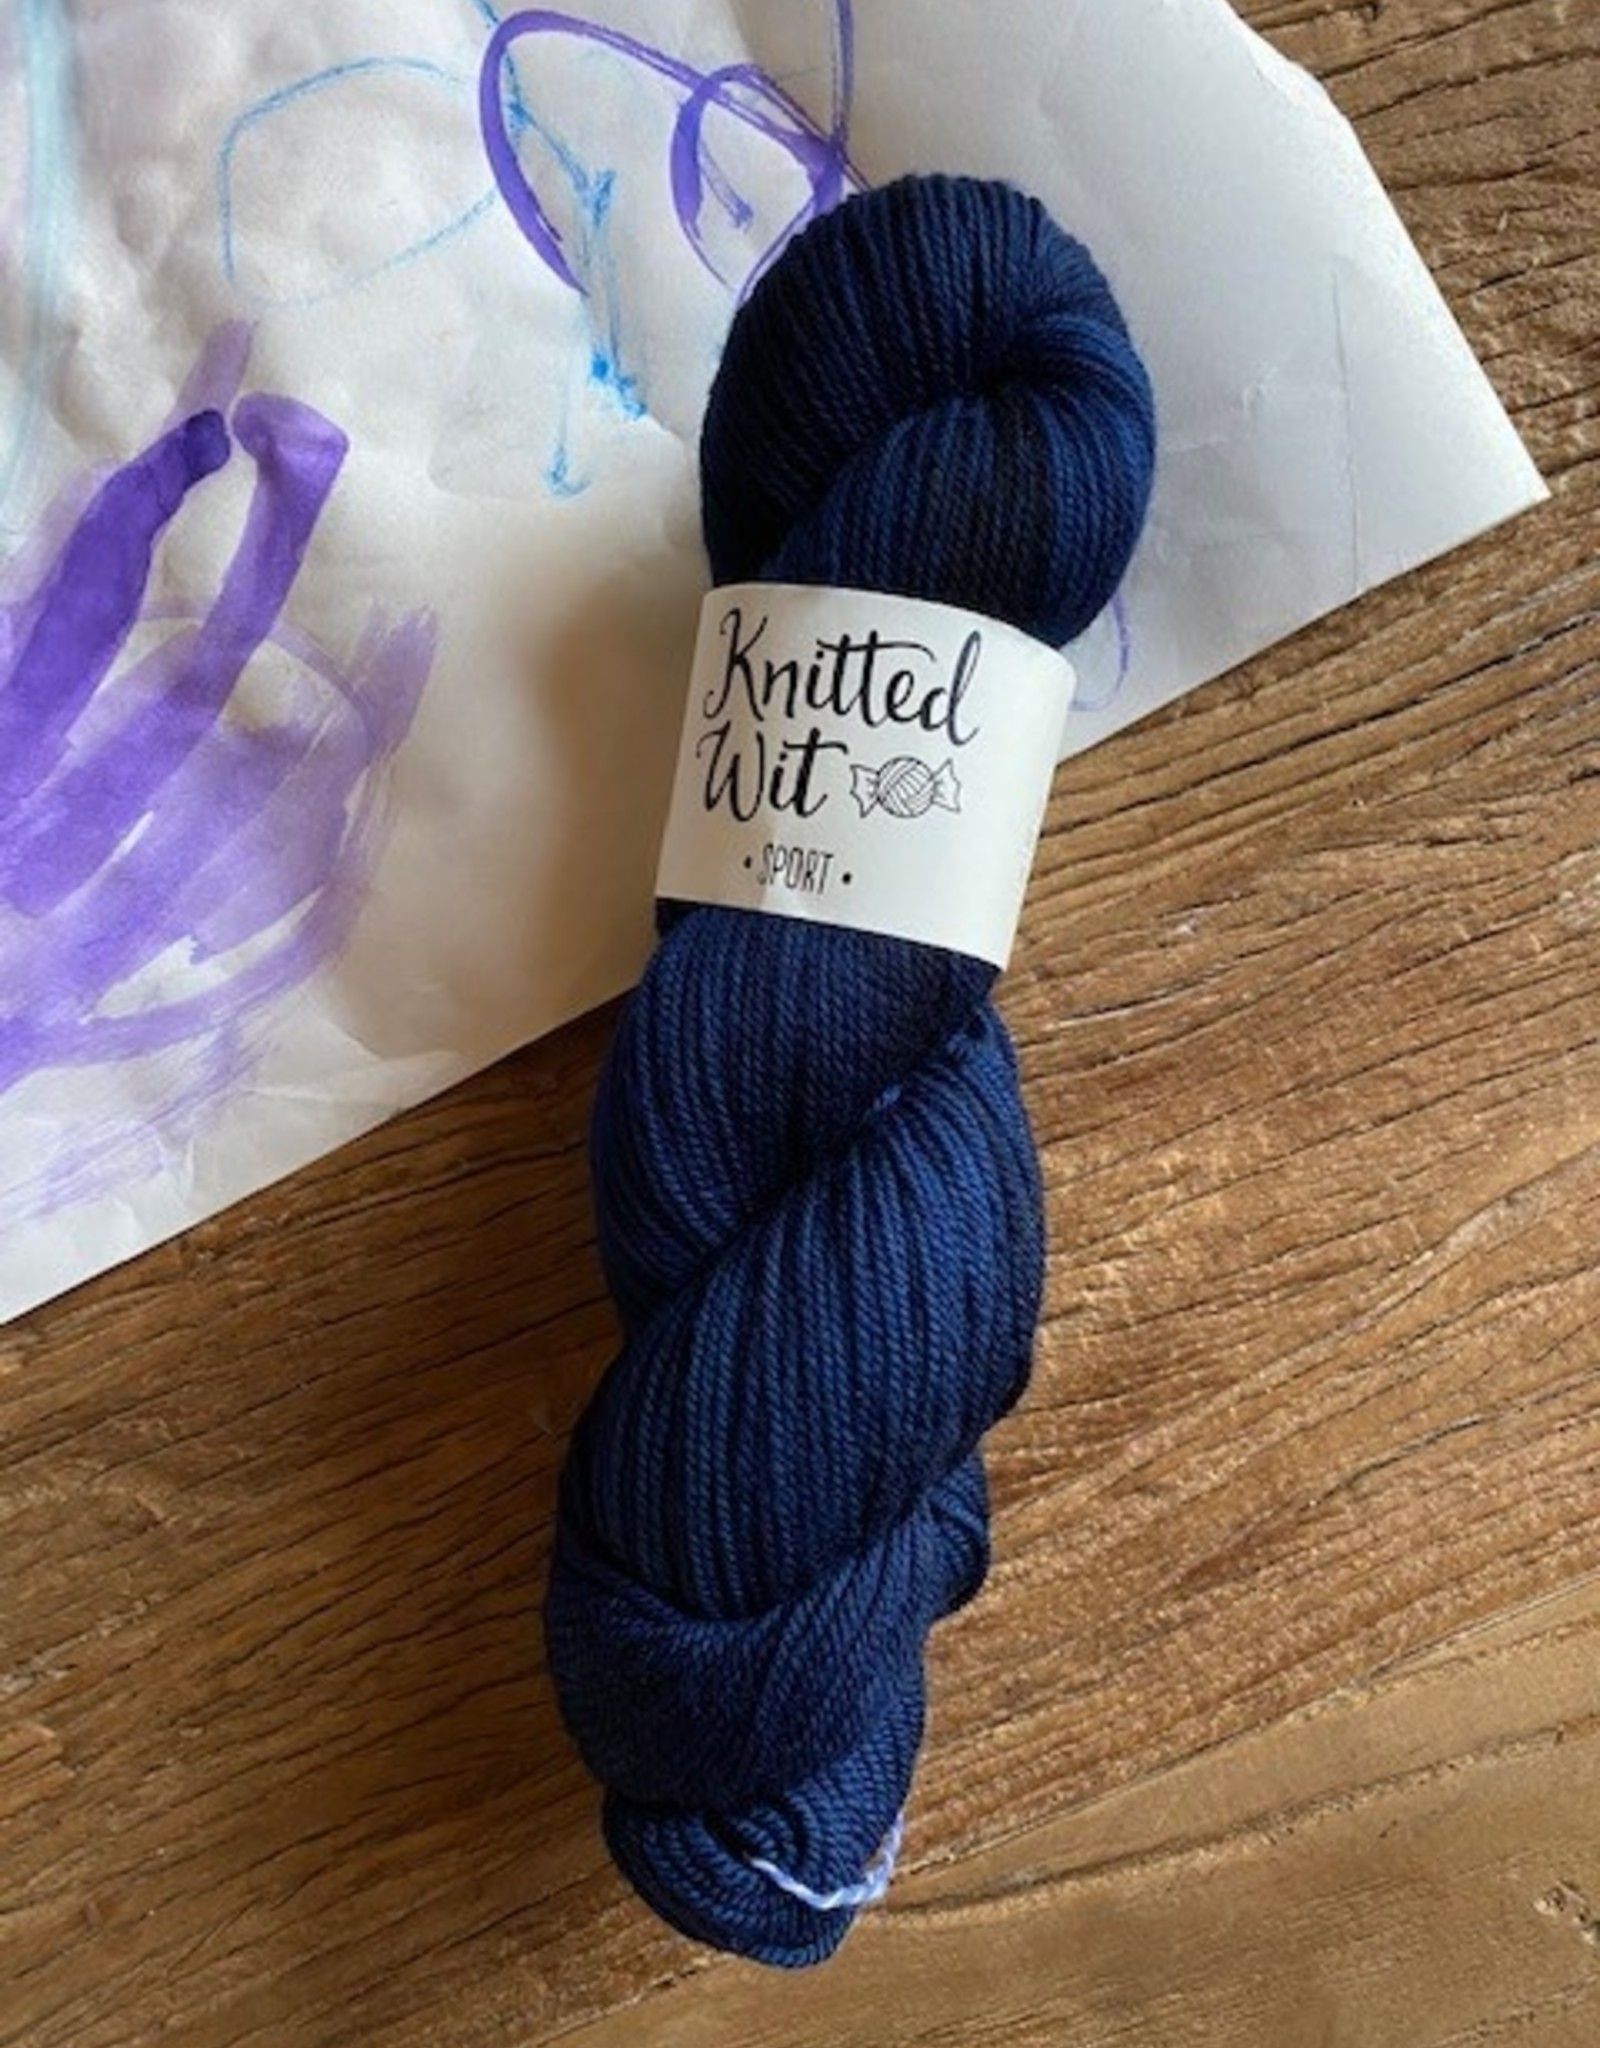 Knitted Wit Sport Prussian Blue